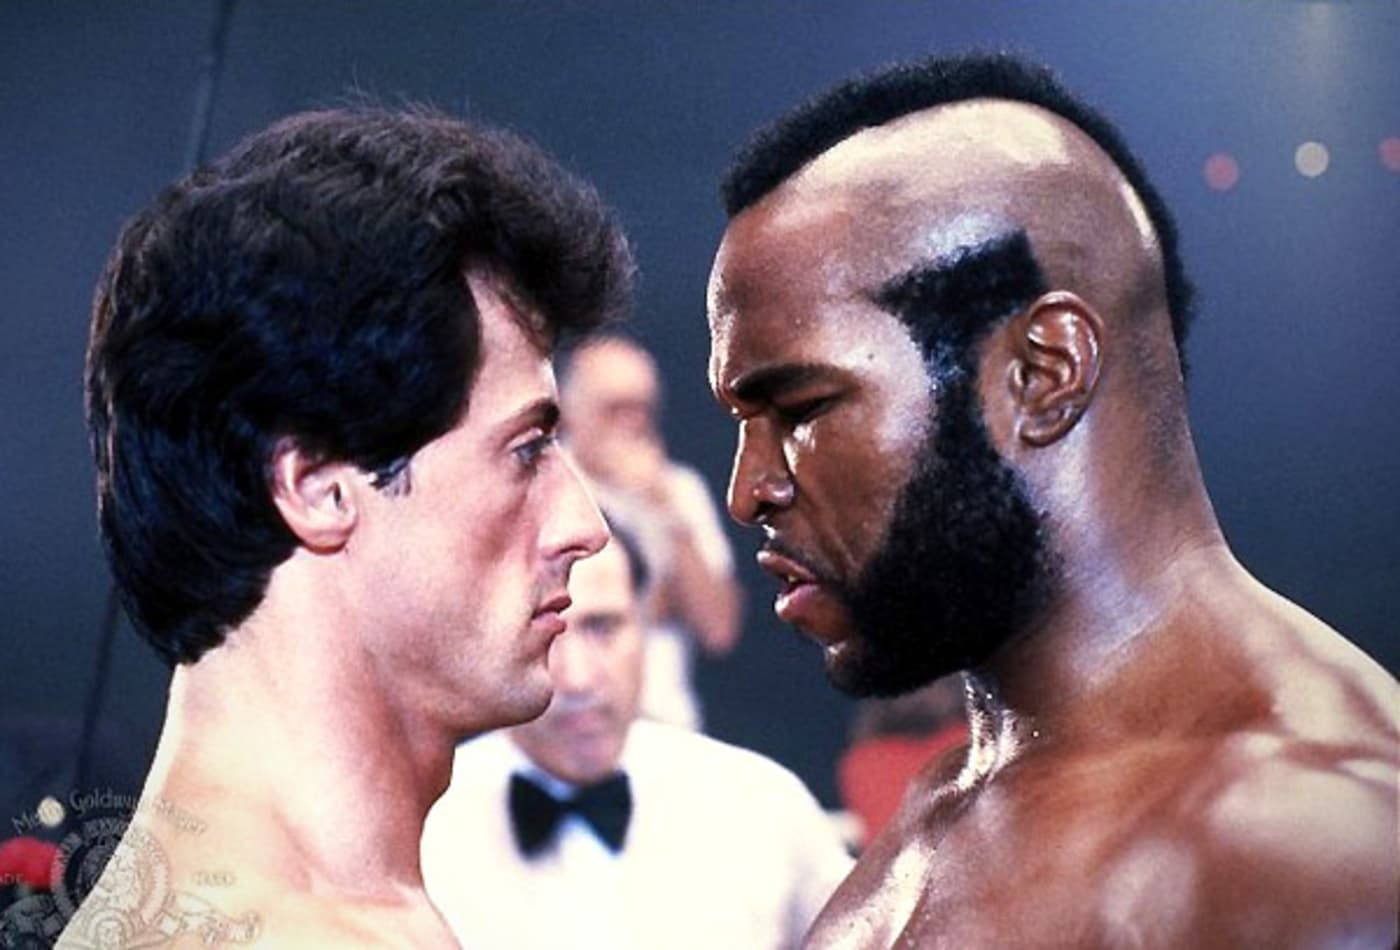 SS_Highest_Grossing_Sports_Movies_Rocky_III.jpg